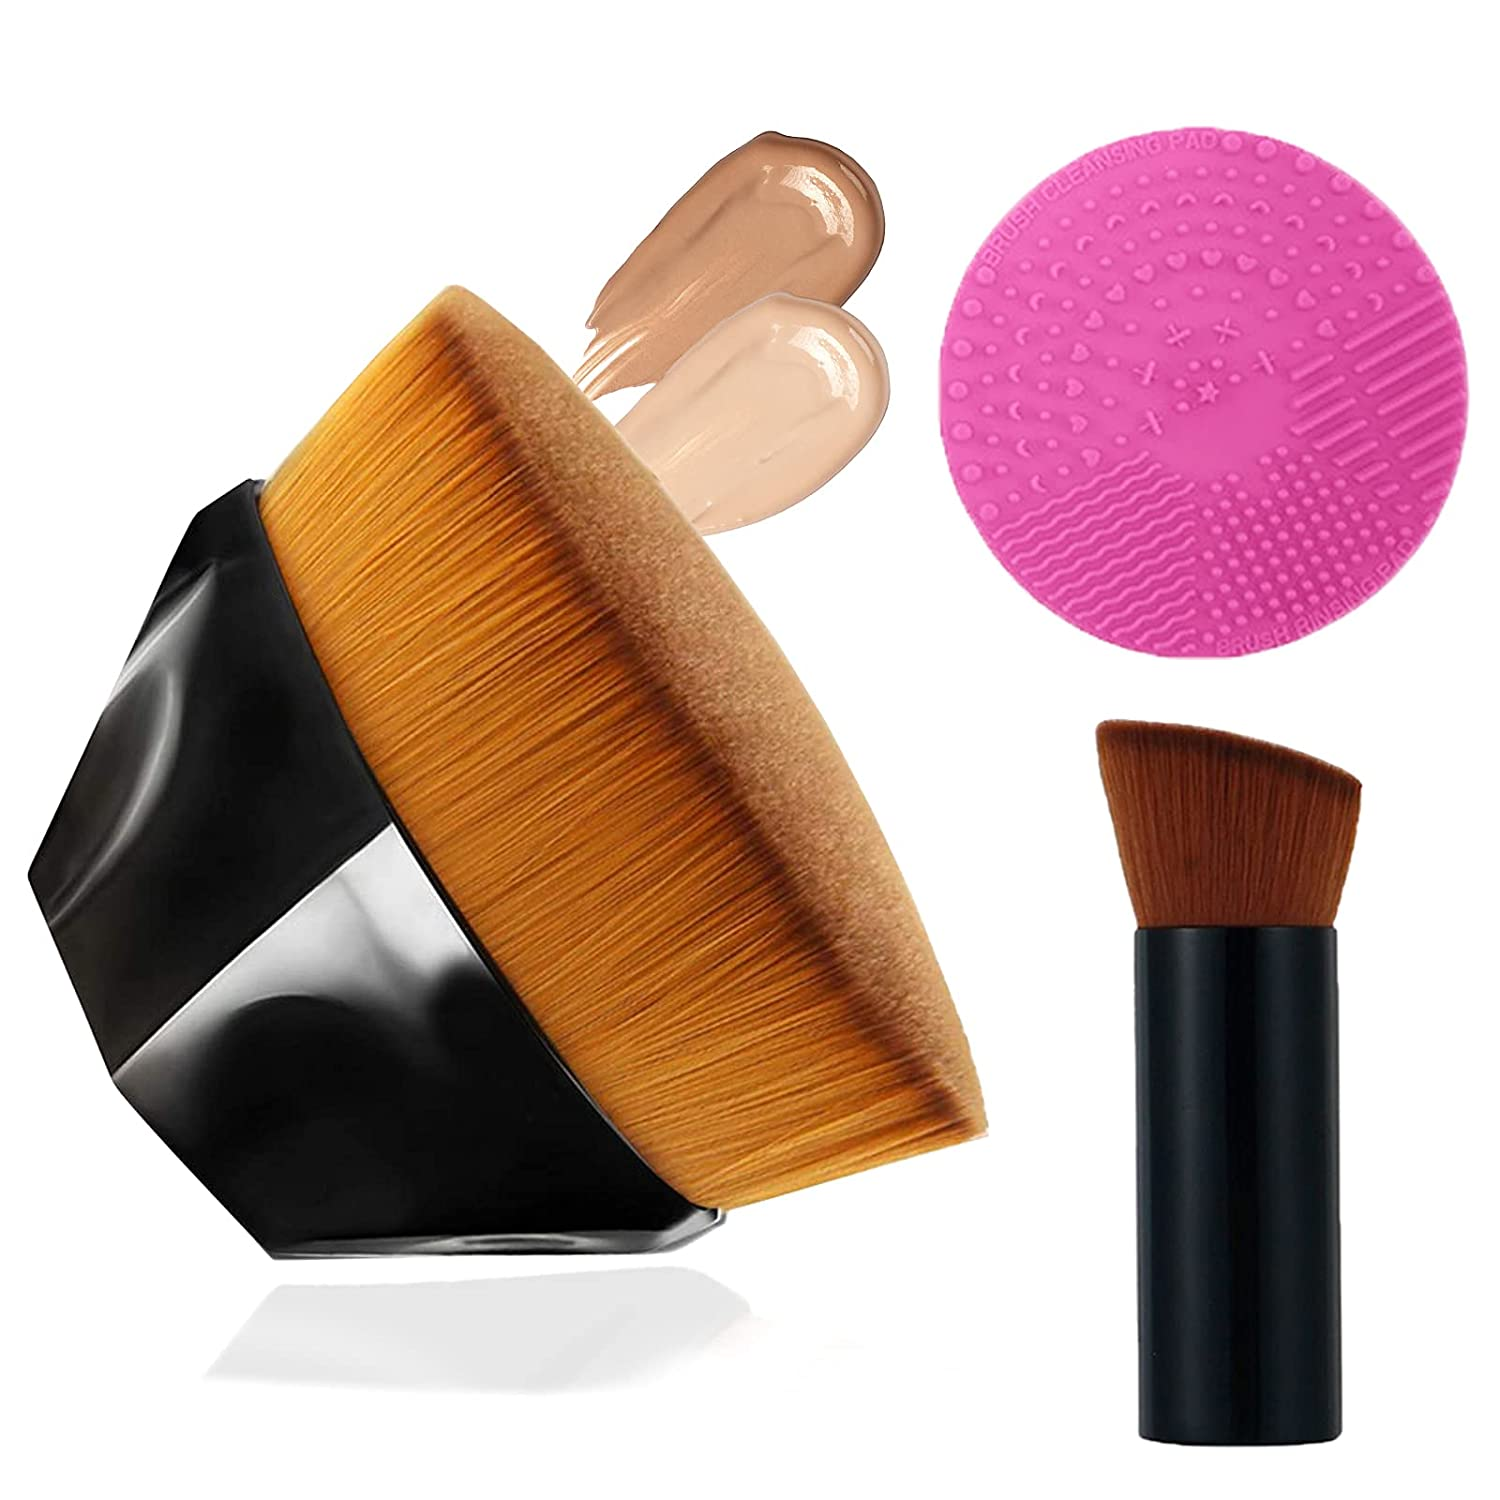 Foundation Brush Makeup Brushes Set, Momma Flawless Foundation Brush for Liquid Makeup, Flat Top Magic Brush and Small Inclined Top High-Density, for Cream Powder Cosmetics, with Cleaning Tool